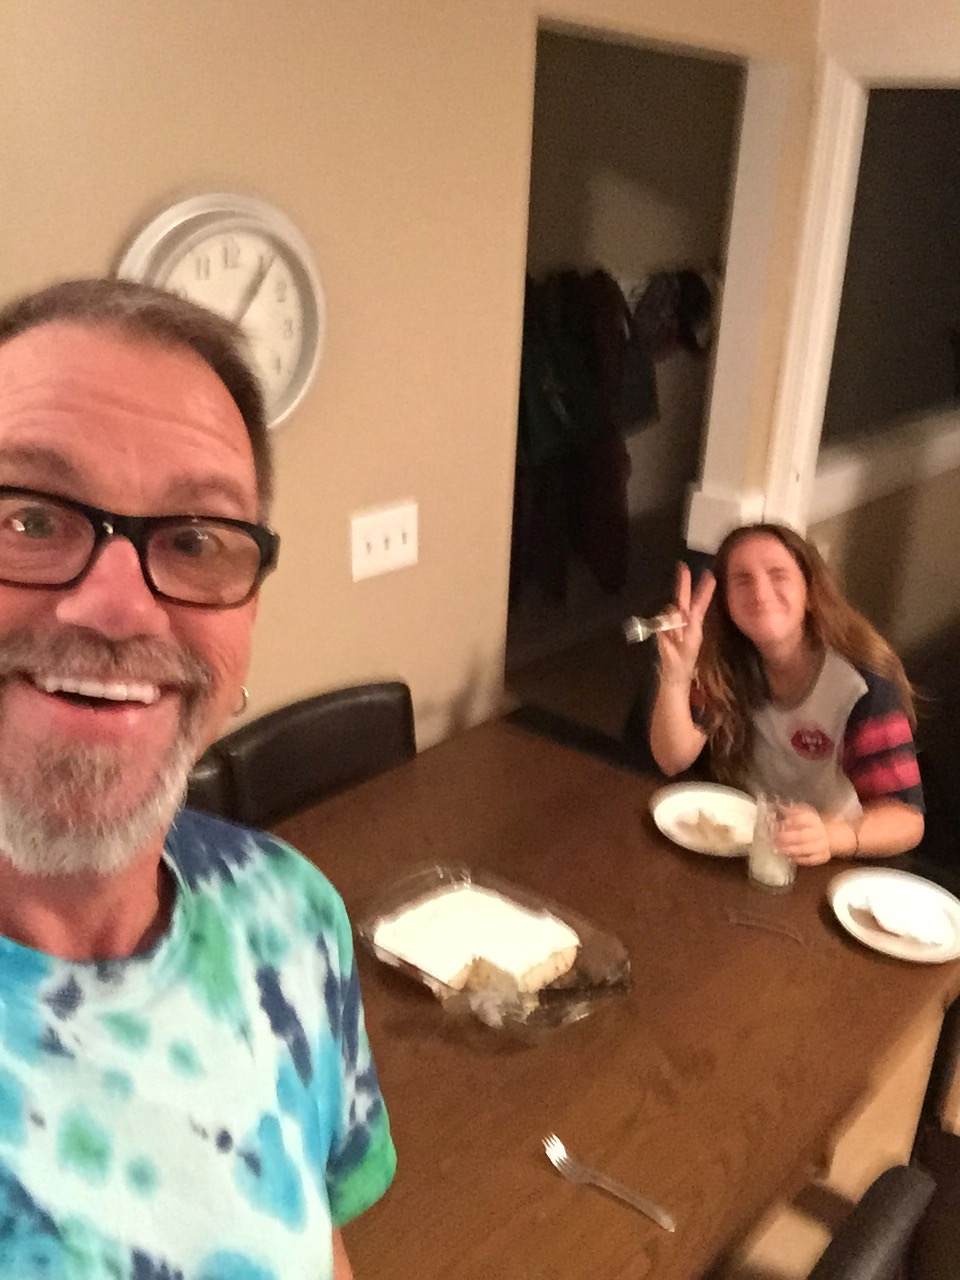 I need to work on my selfie skills! My daughter Lauren in the background eating some of my birthday cake.